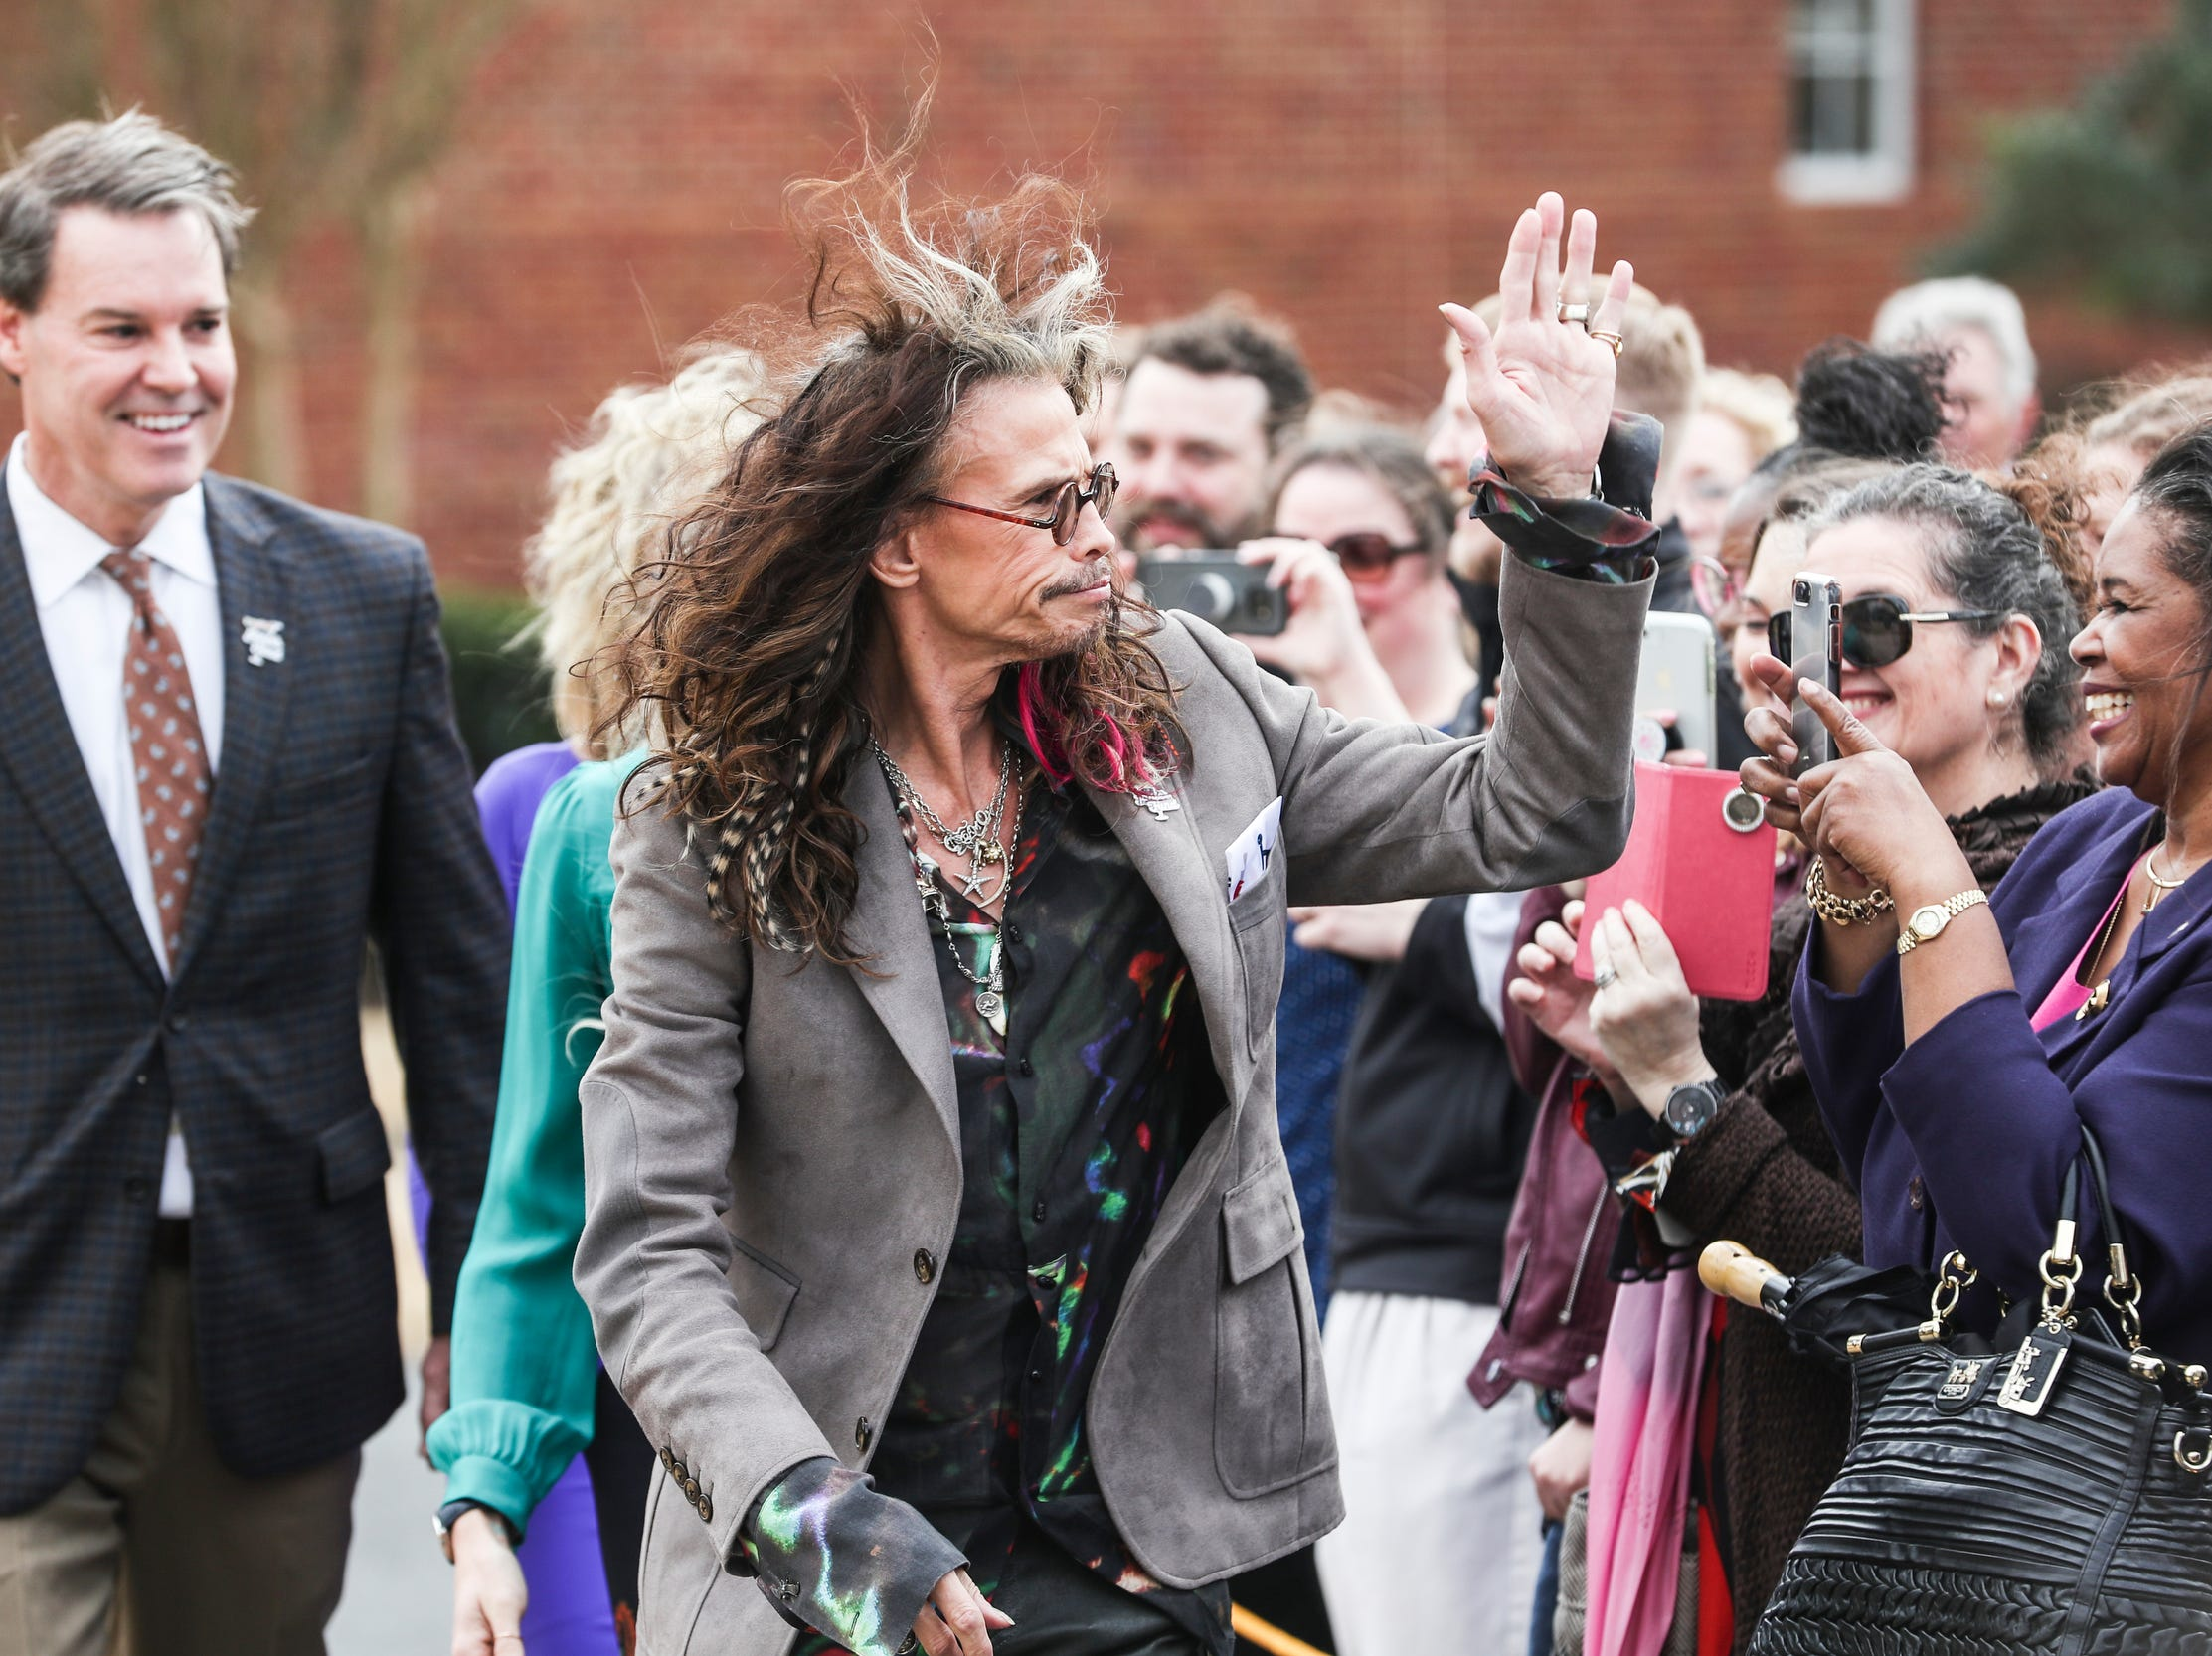 February 04 2019 - Steven Tyler arrives for a scarf-cutting celebration outside of Janie's House at Youth Villages in Bartlett. Janie's Fund paid for the renovations of the existing home for girls and Youth Villages renamed it a Janie's House.